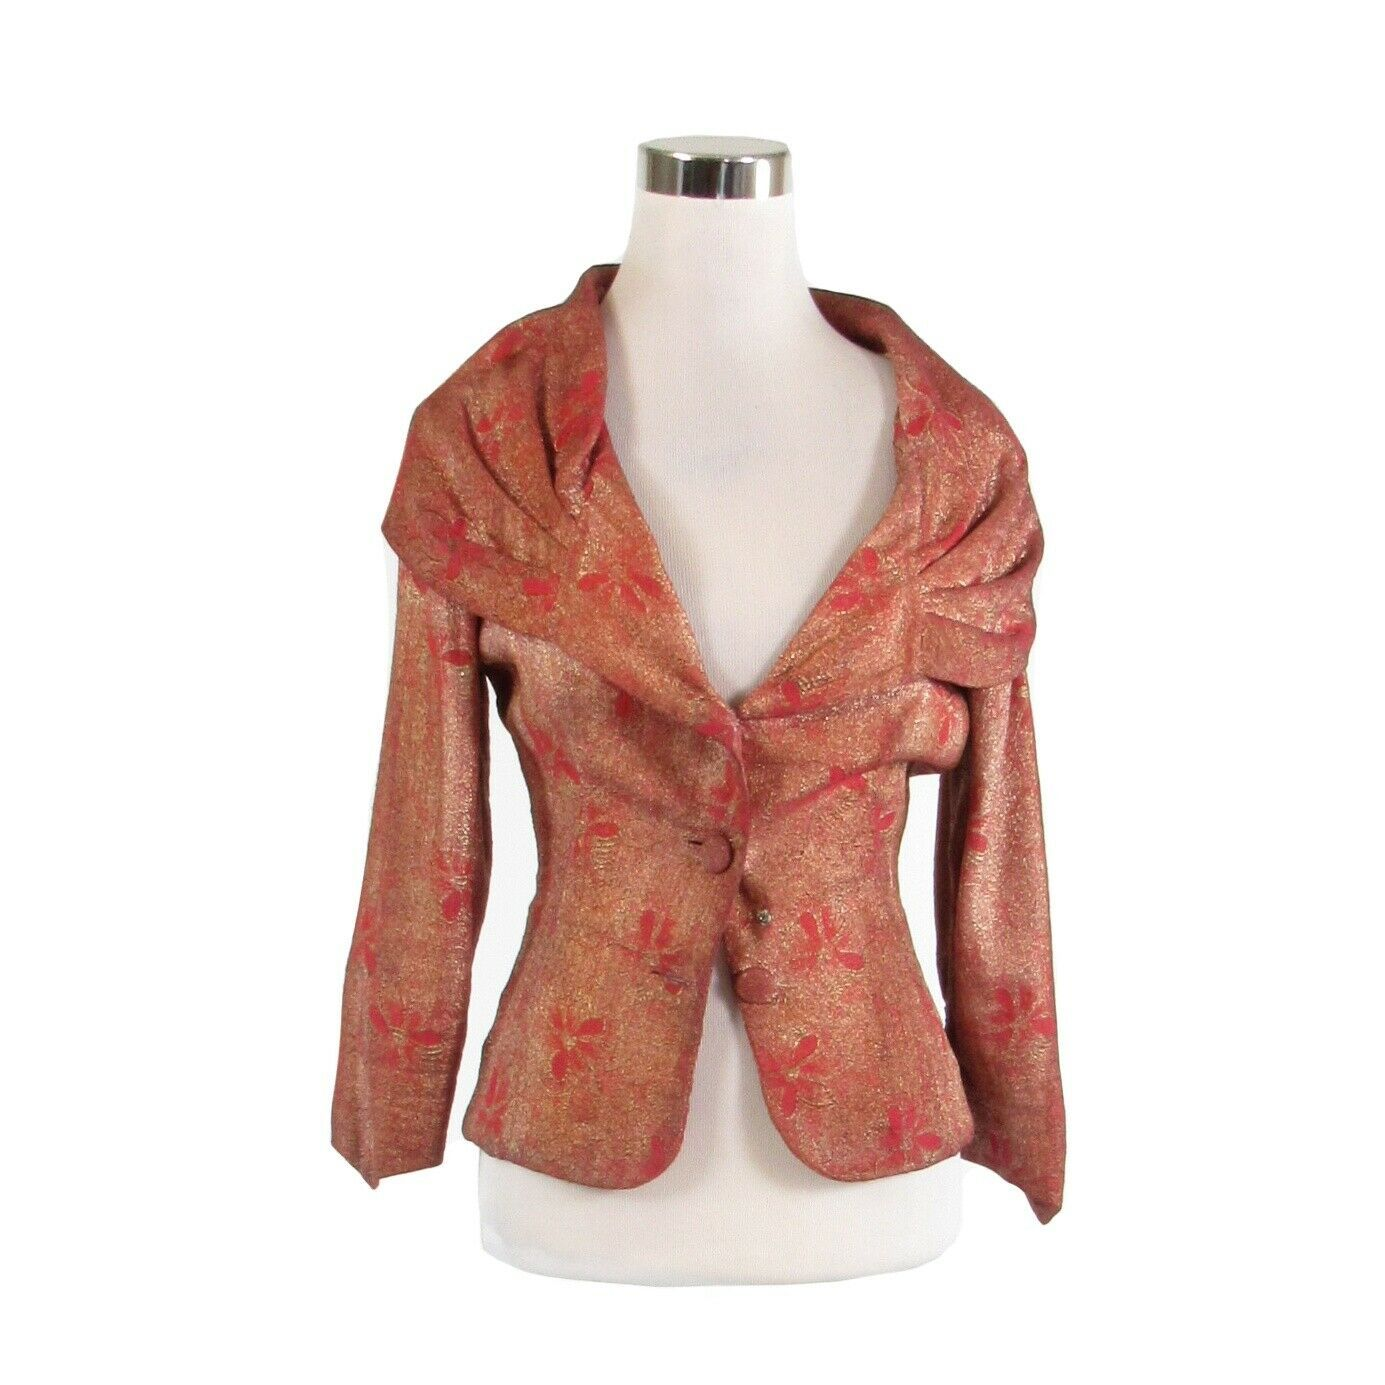 Primary image for Maroon red gold floral brocade vintage 3/4 sleeve jacket XS